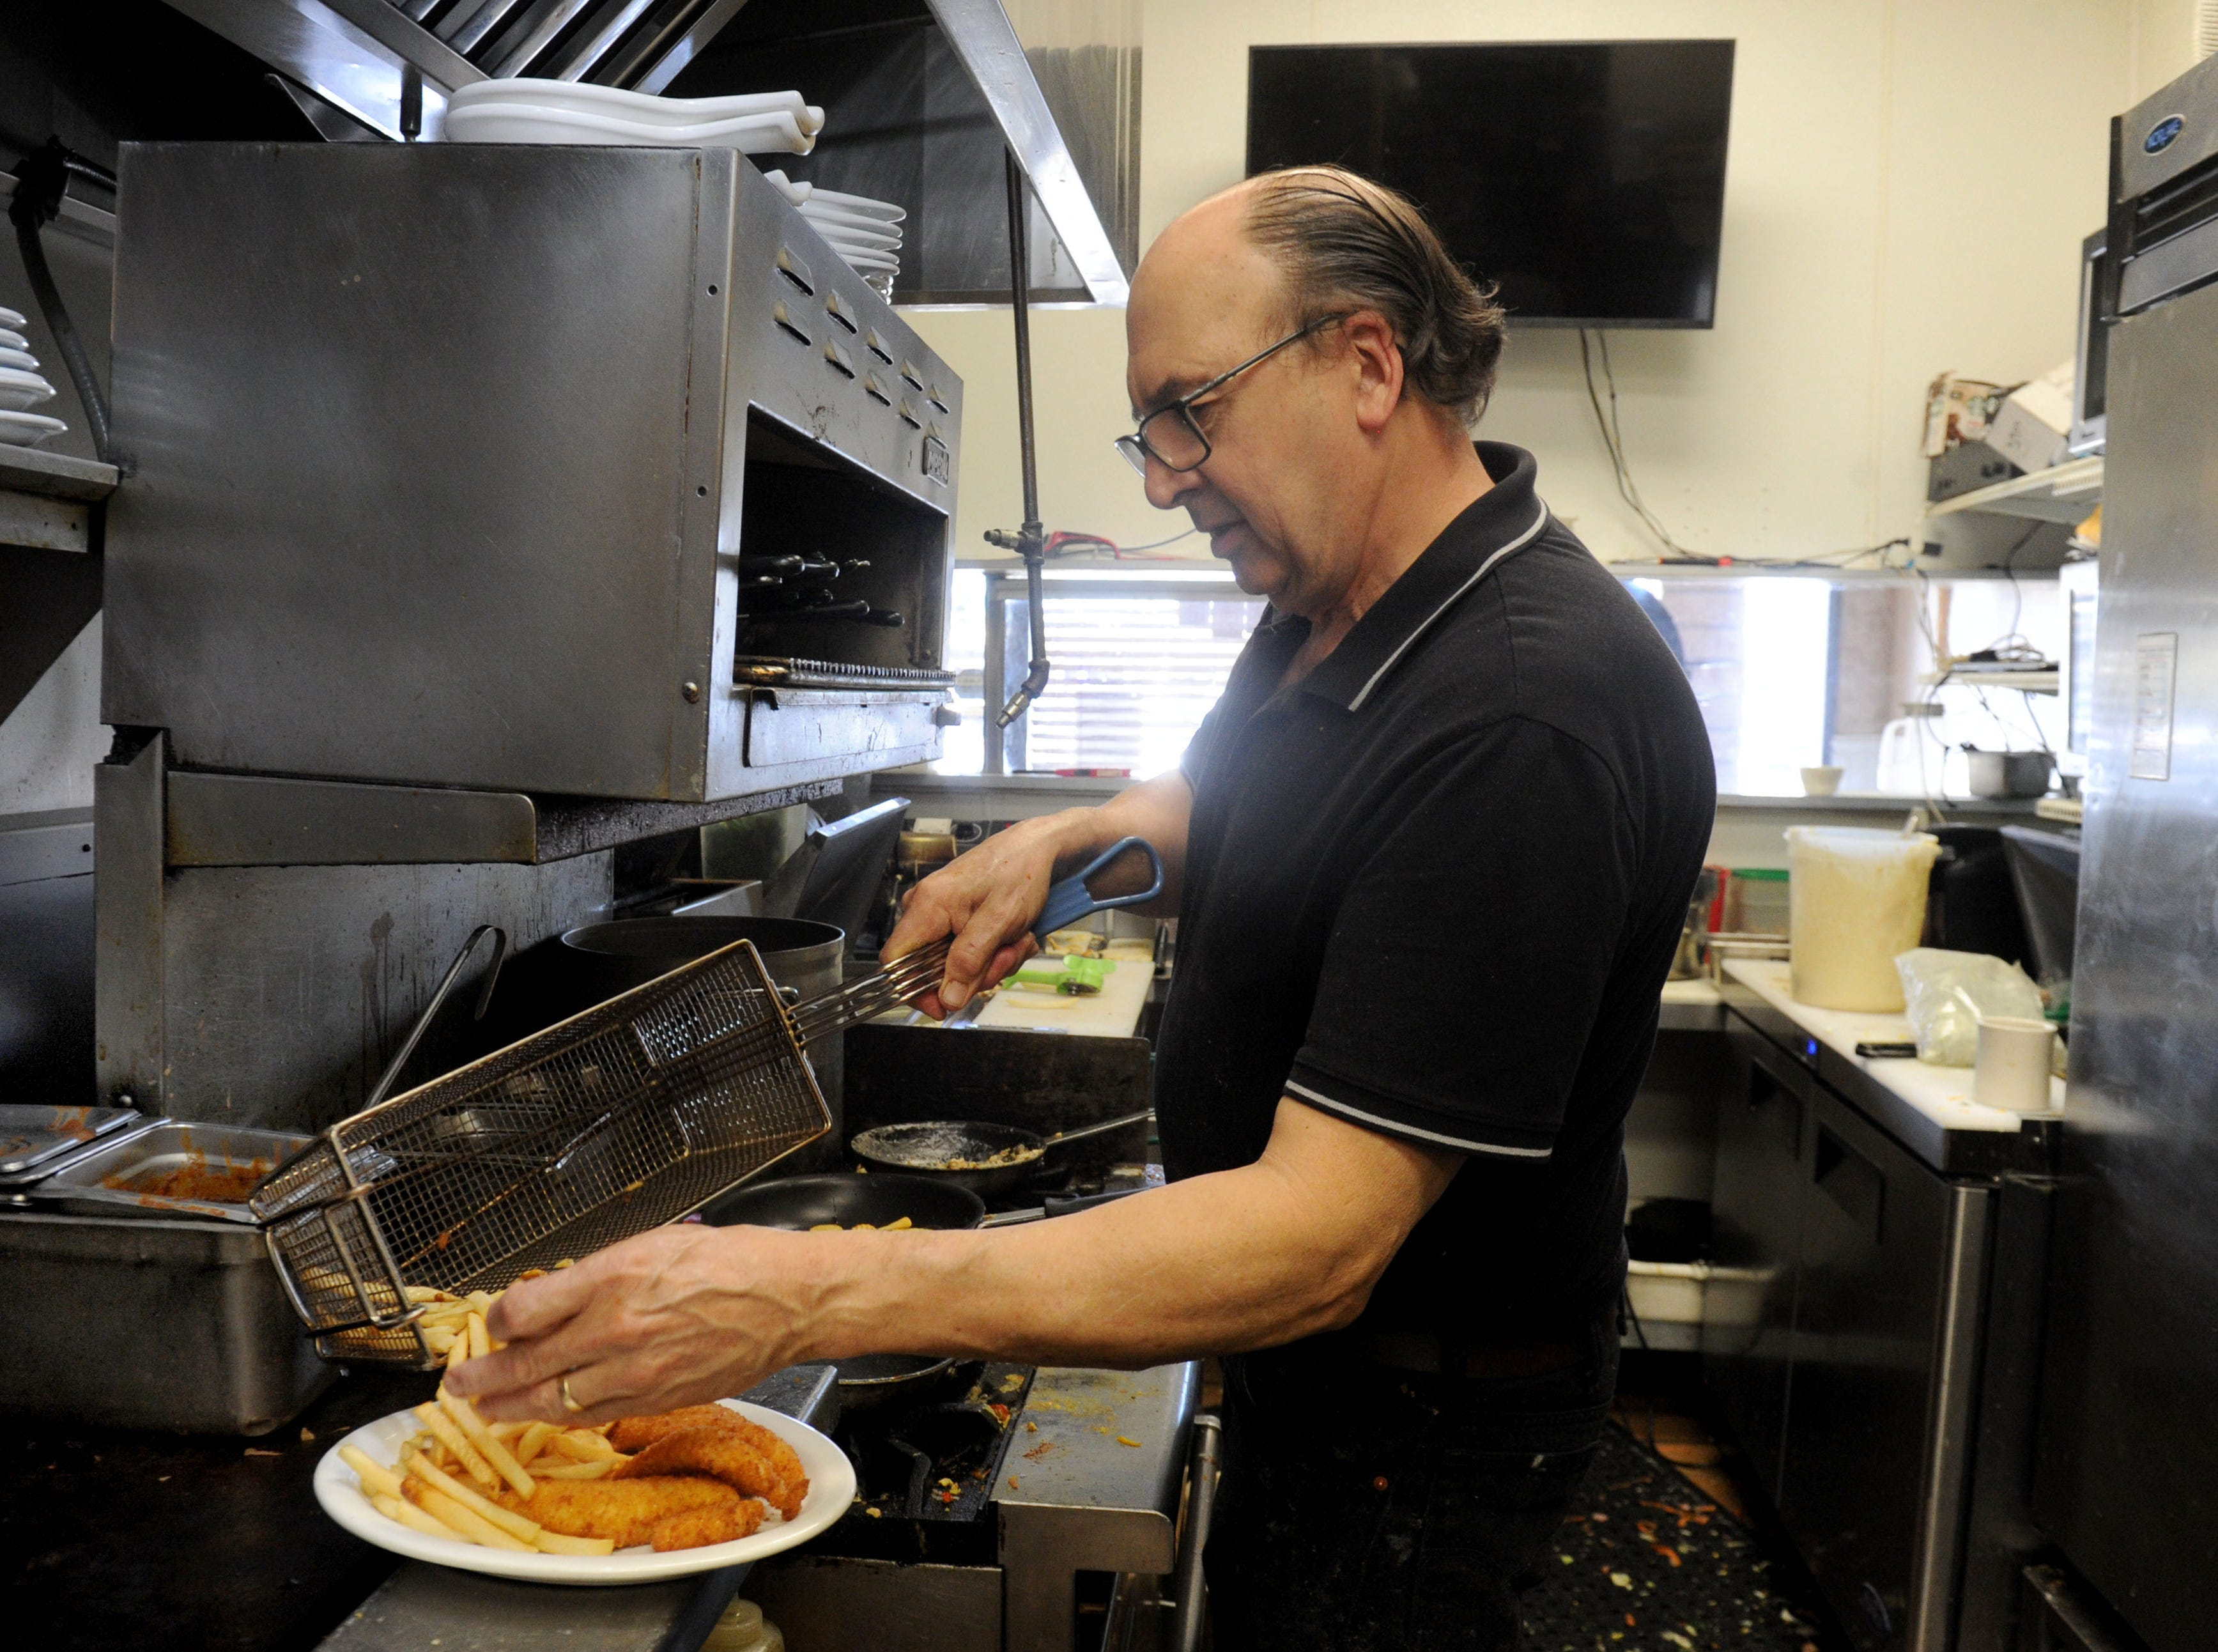 Thomas Fontes, owner and chef of Jessica's Cafe in Camarillo plates an order of fish with French fries.